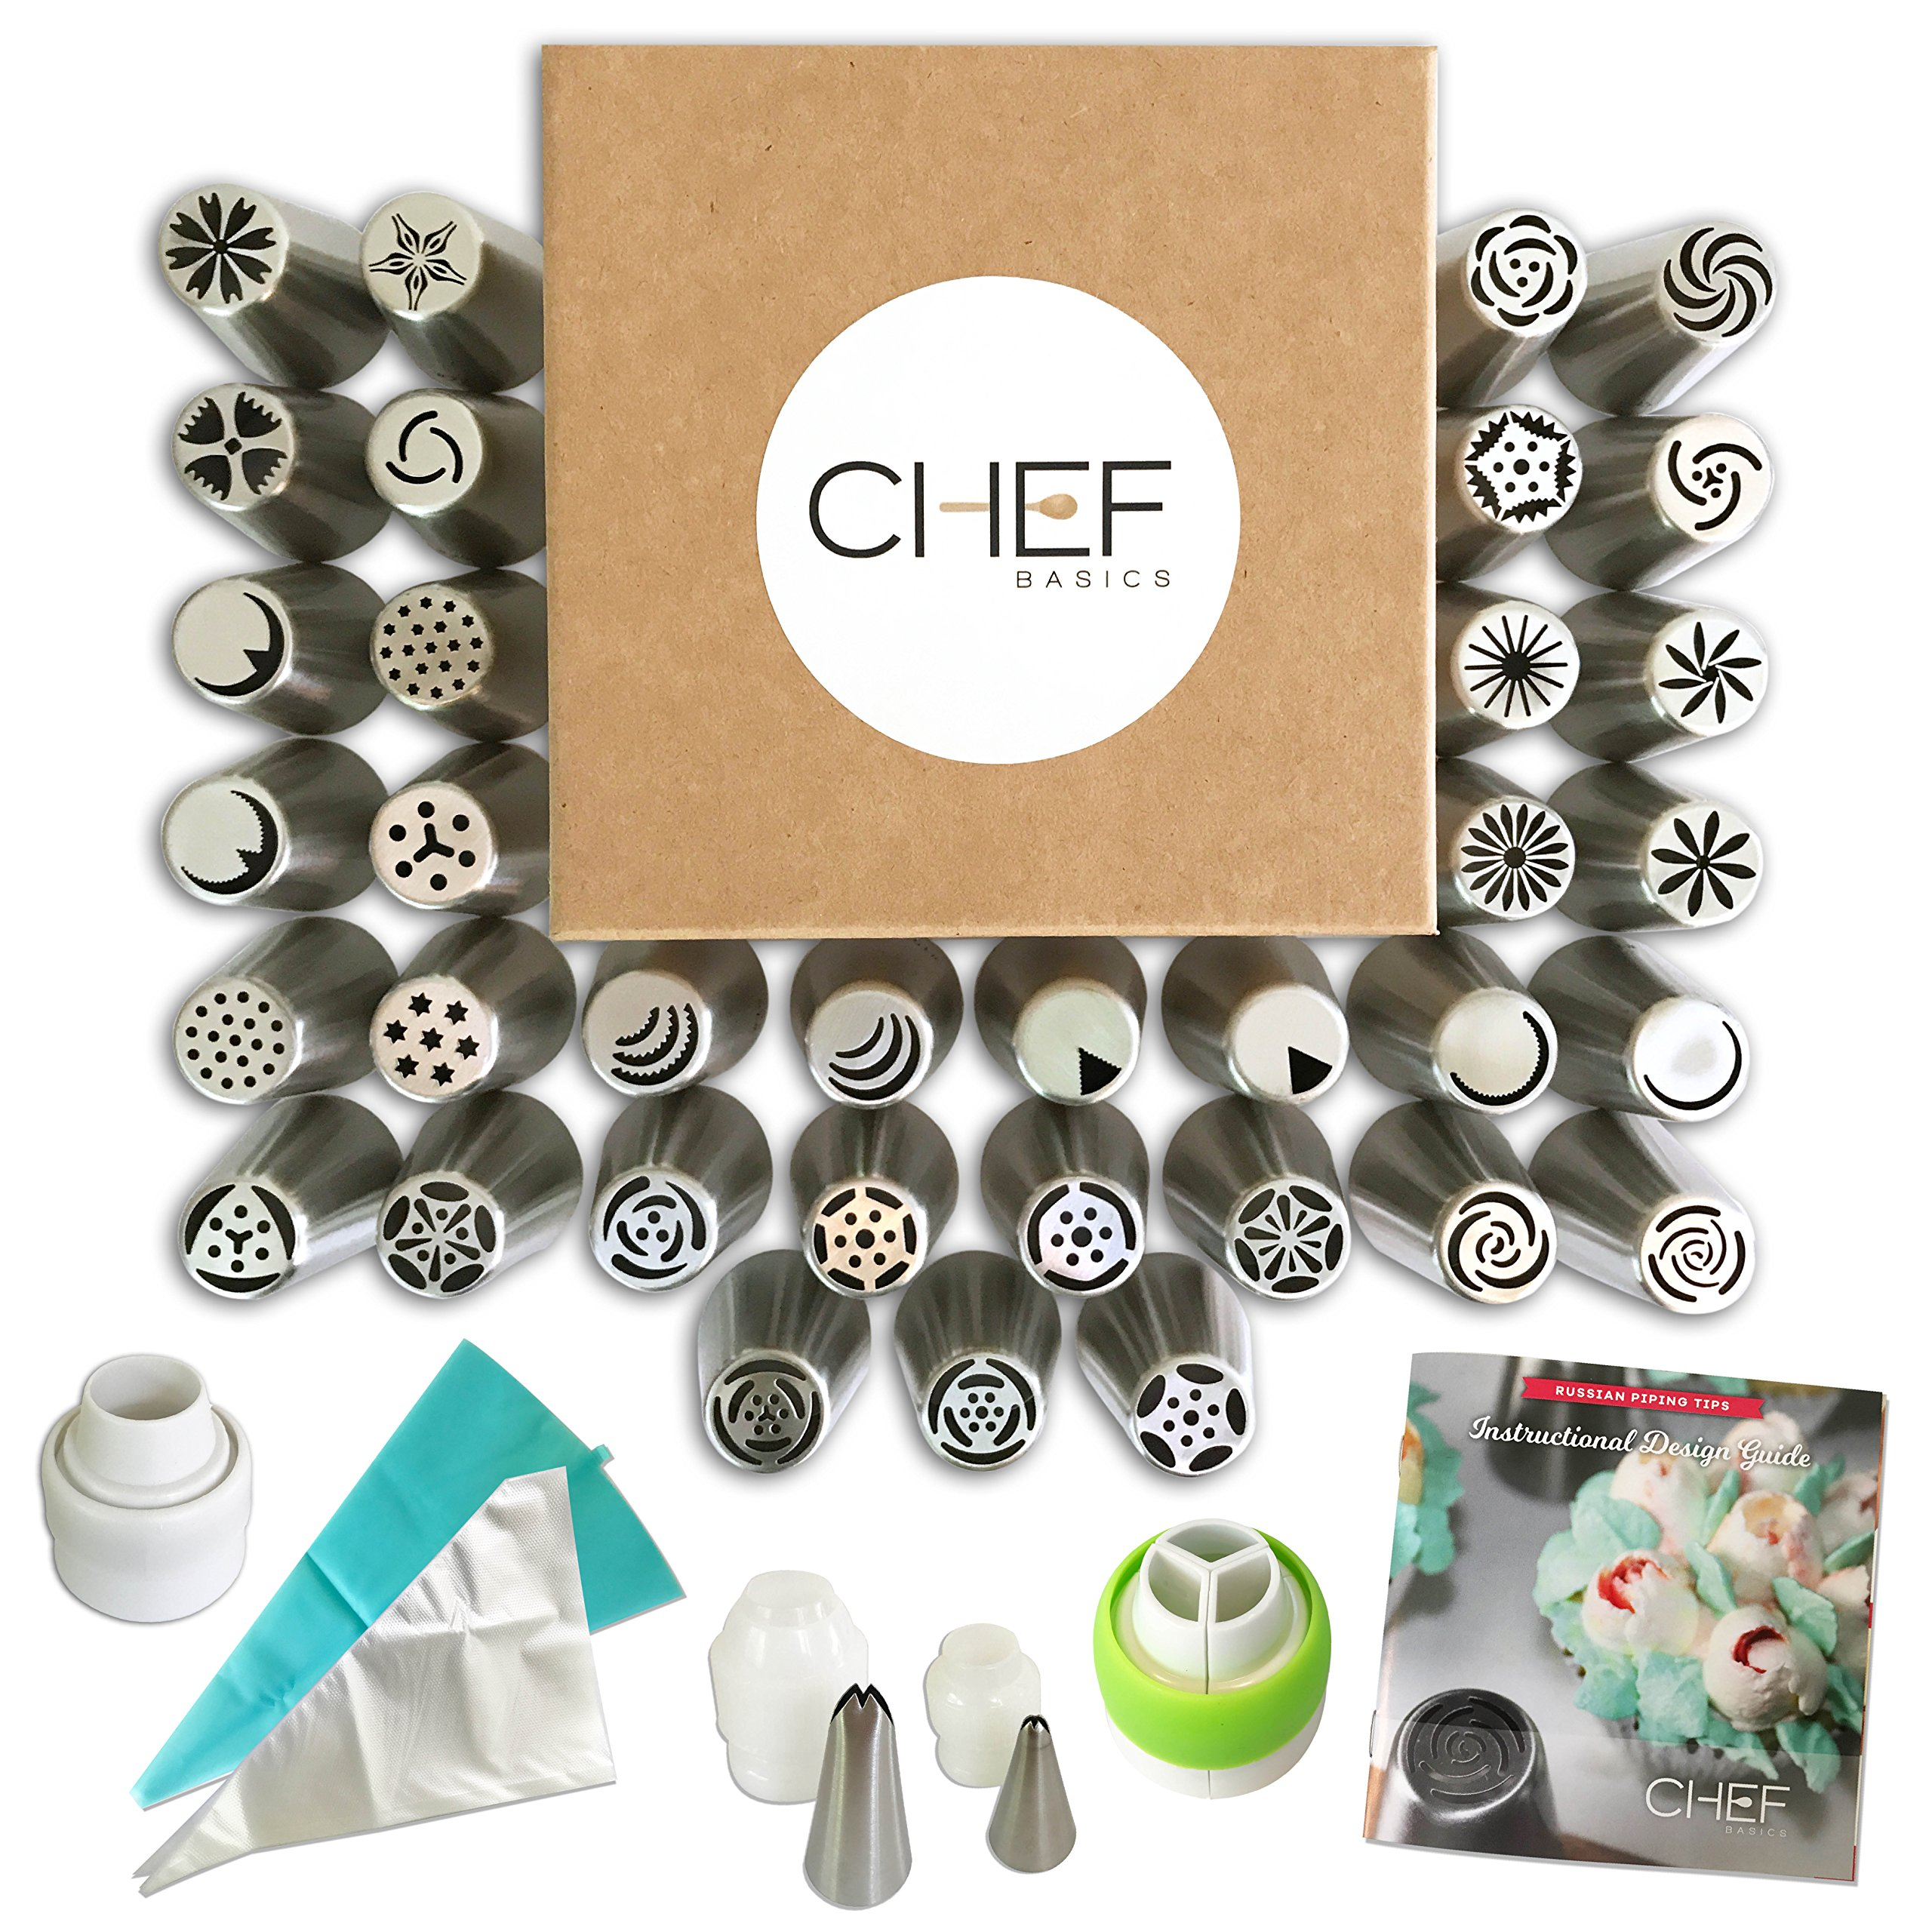 Chef Basics' 63 Piece Complete Russian Piping Tip Set w/35 Tips, 20 Large Disposable Bags, 1 Large Reusable Bag, 1 Tri and 1 Single-Coupler, TWO Leaf Tips (1 Large, 1 Small), PRINTED design guide